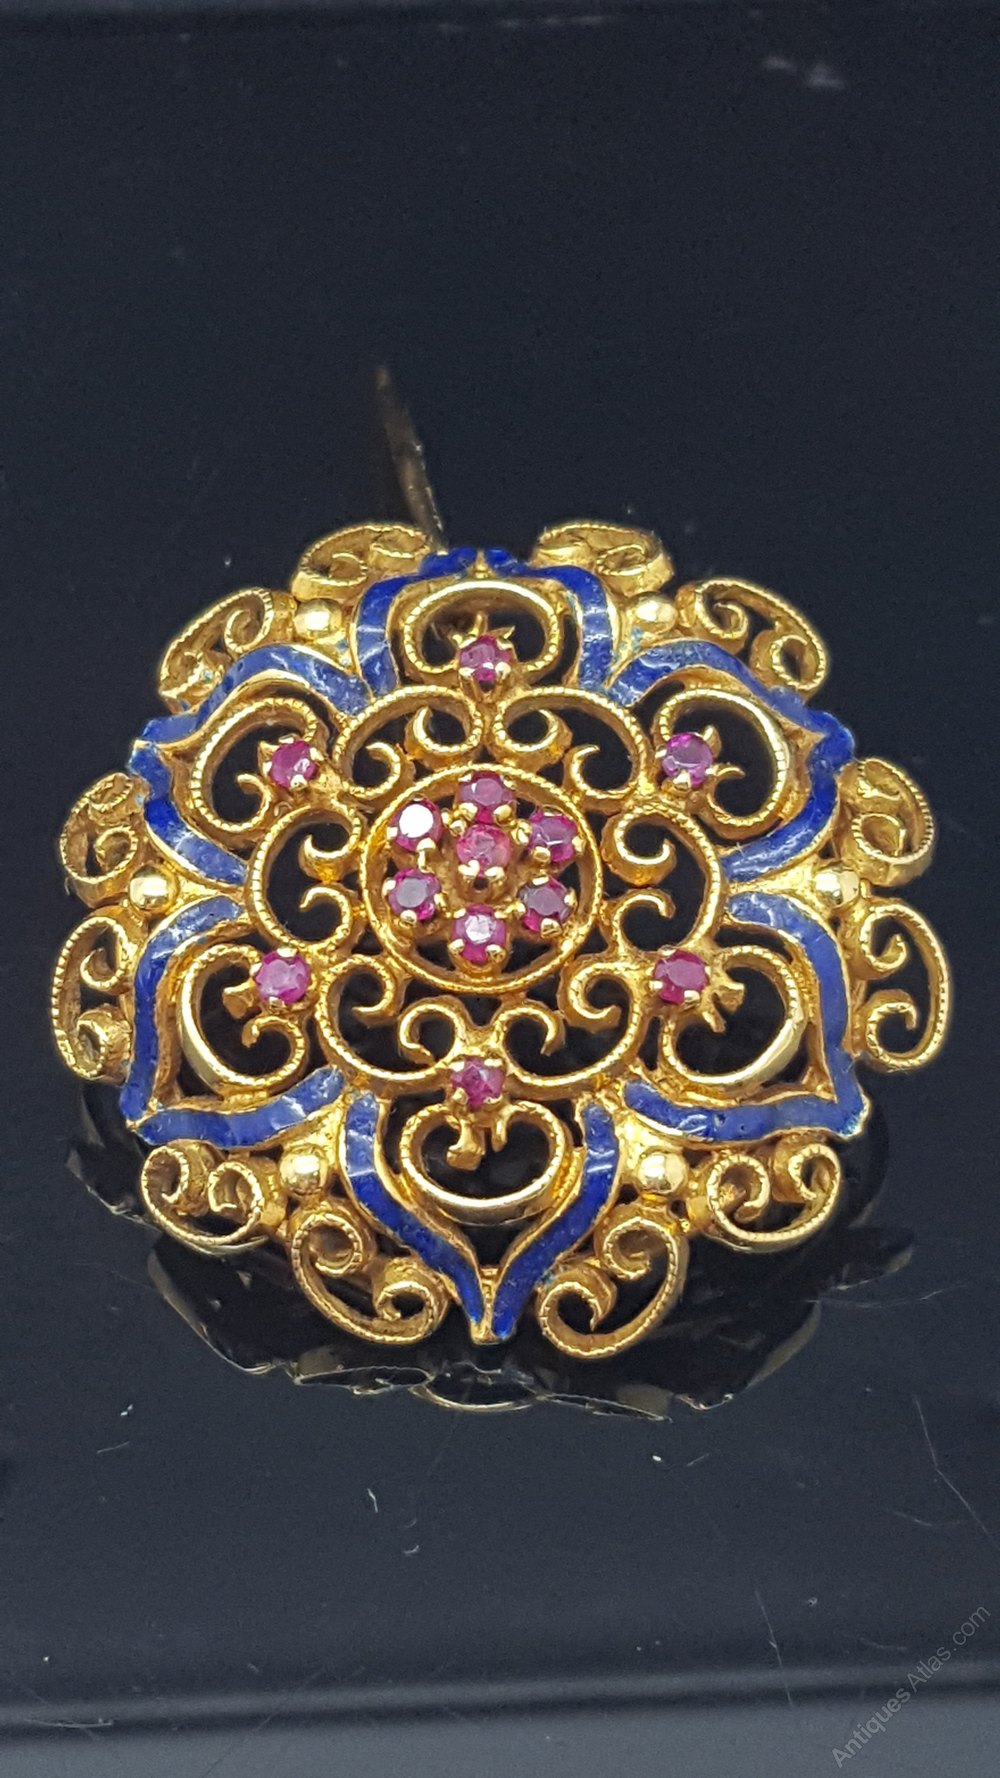 Antiques Atlas - 18ct Ruby And Enamel Brooch